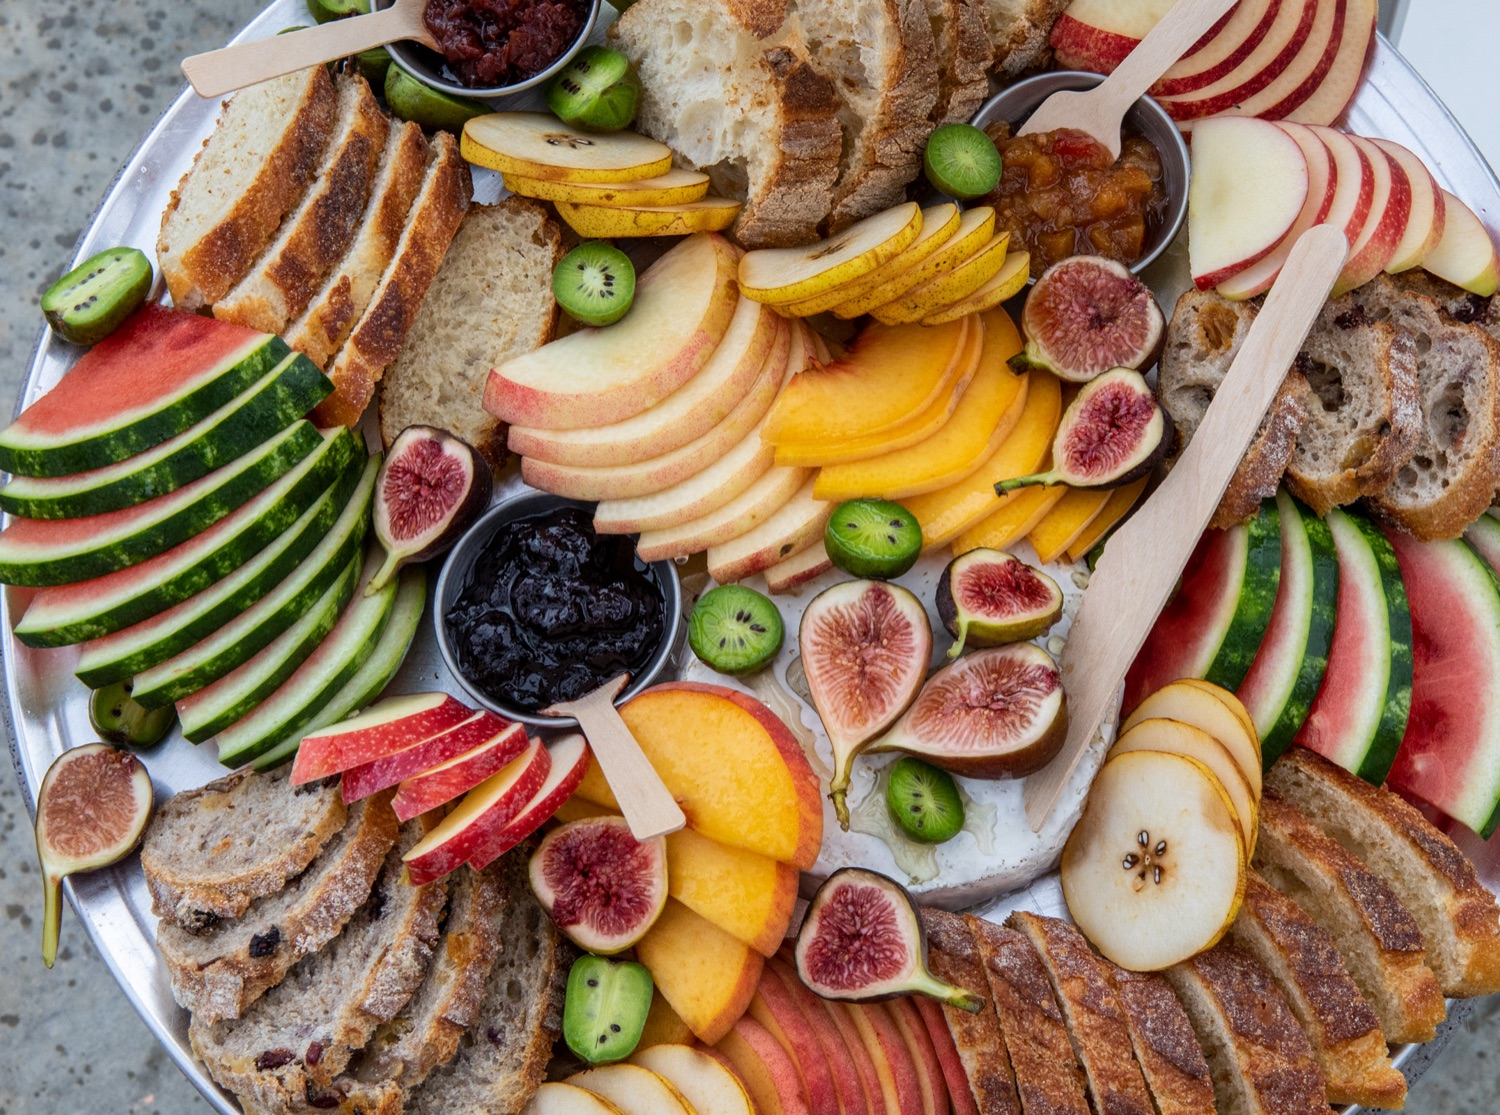 """<a href=""""https://filesource.wostreaming.net/commonwealthofpa/photo/18869_20063_DCED_CulinaryTrails_AG_11.jpg"""" target=""""_blank"""">⇣Download Photo<br></a>A charcuterie board made by Talking  Breads was on display at Wednesdays event.  First Lady Frances Wolf and Department of Community and Economic Development (DCED) Deputy Secretary for Marketing, Tourism & Film Carrie Fischer Lepore  celebrated Pennsylvanias rich food history and heritage with the launch of four new culinary trails: Picked: An Apple Trail; Baked: A Bread Trail; Chopped: A Charcuterie Trail; and Pickled: A Fermented Trail.  Mechanicsburg, PA - September 22, 2021"""